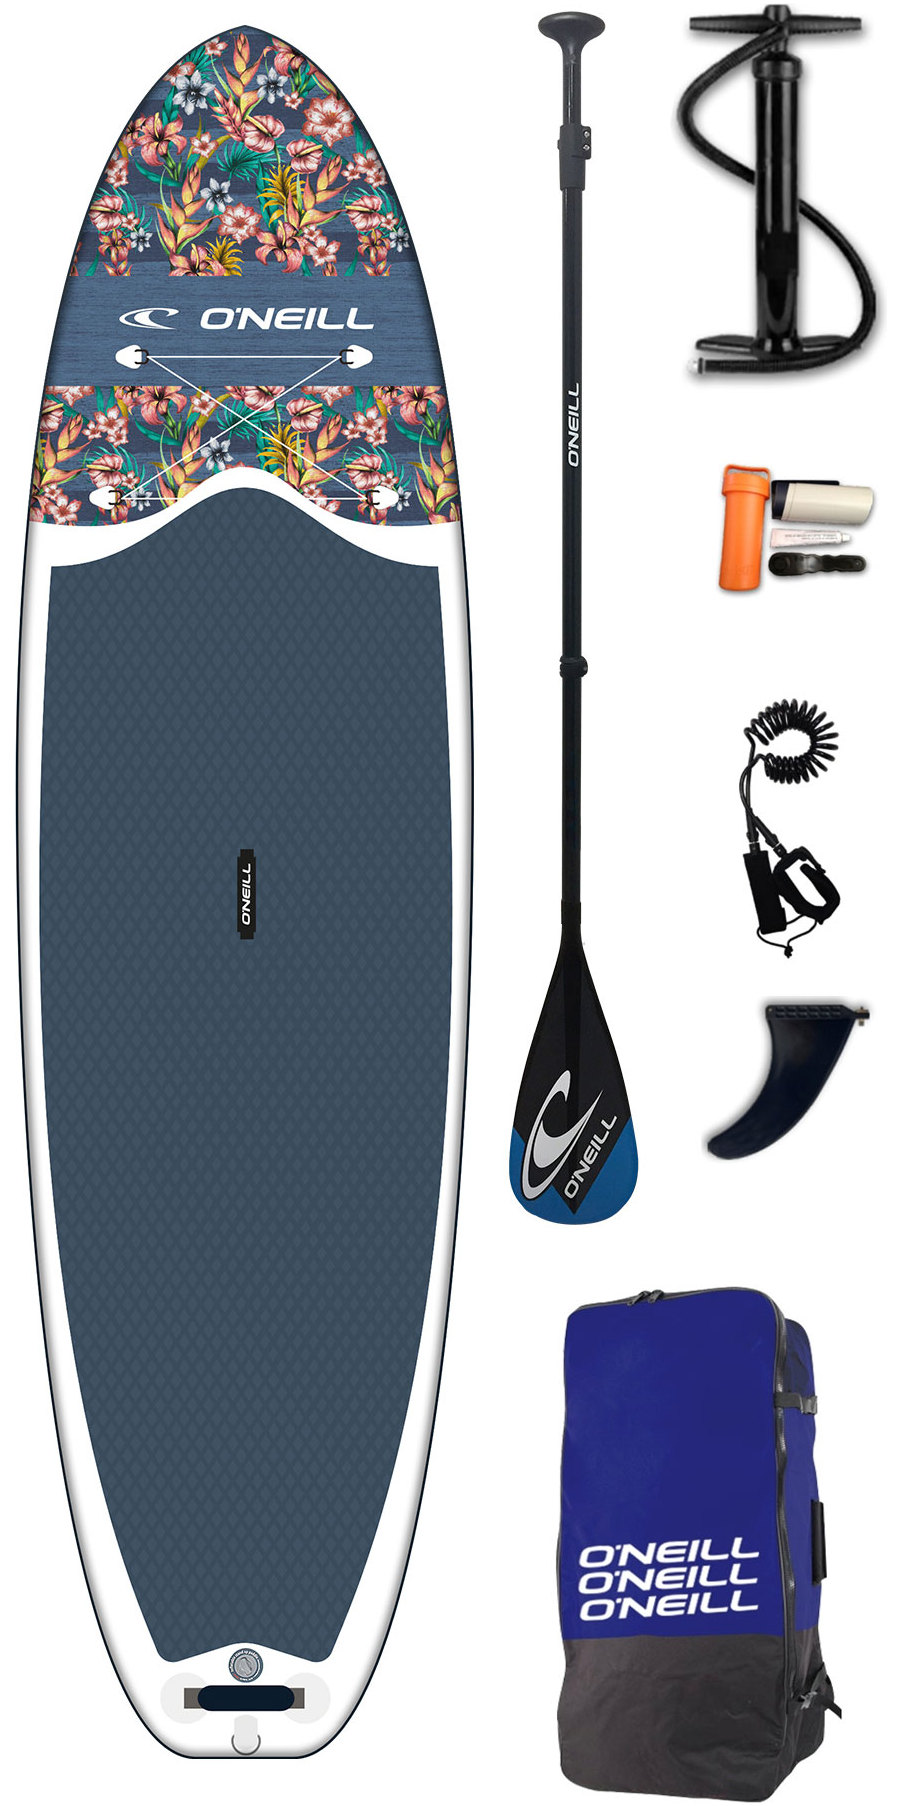 2019 O'Neill Lifestyle 10'6 Inflatable SUP Board, Paddle, Pump, Bag & Leash Flowers